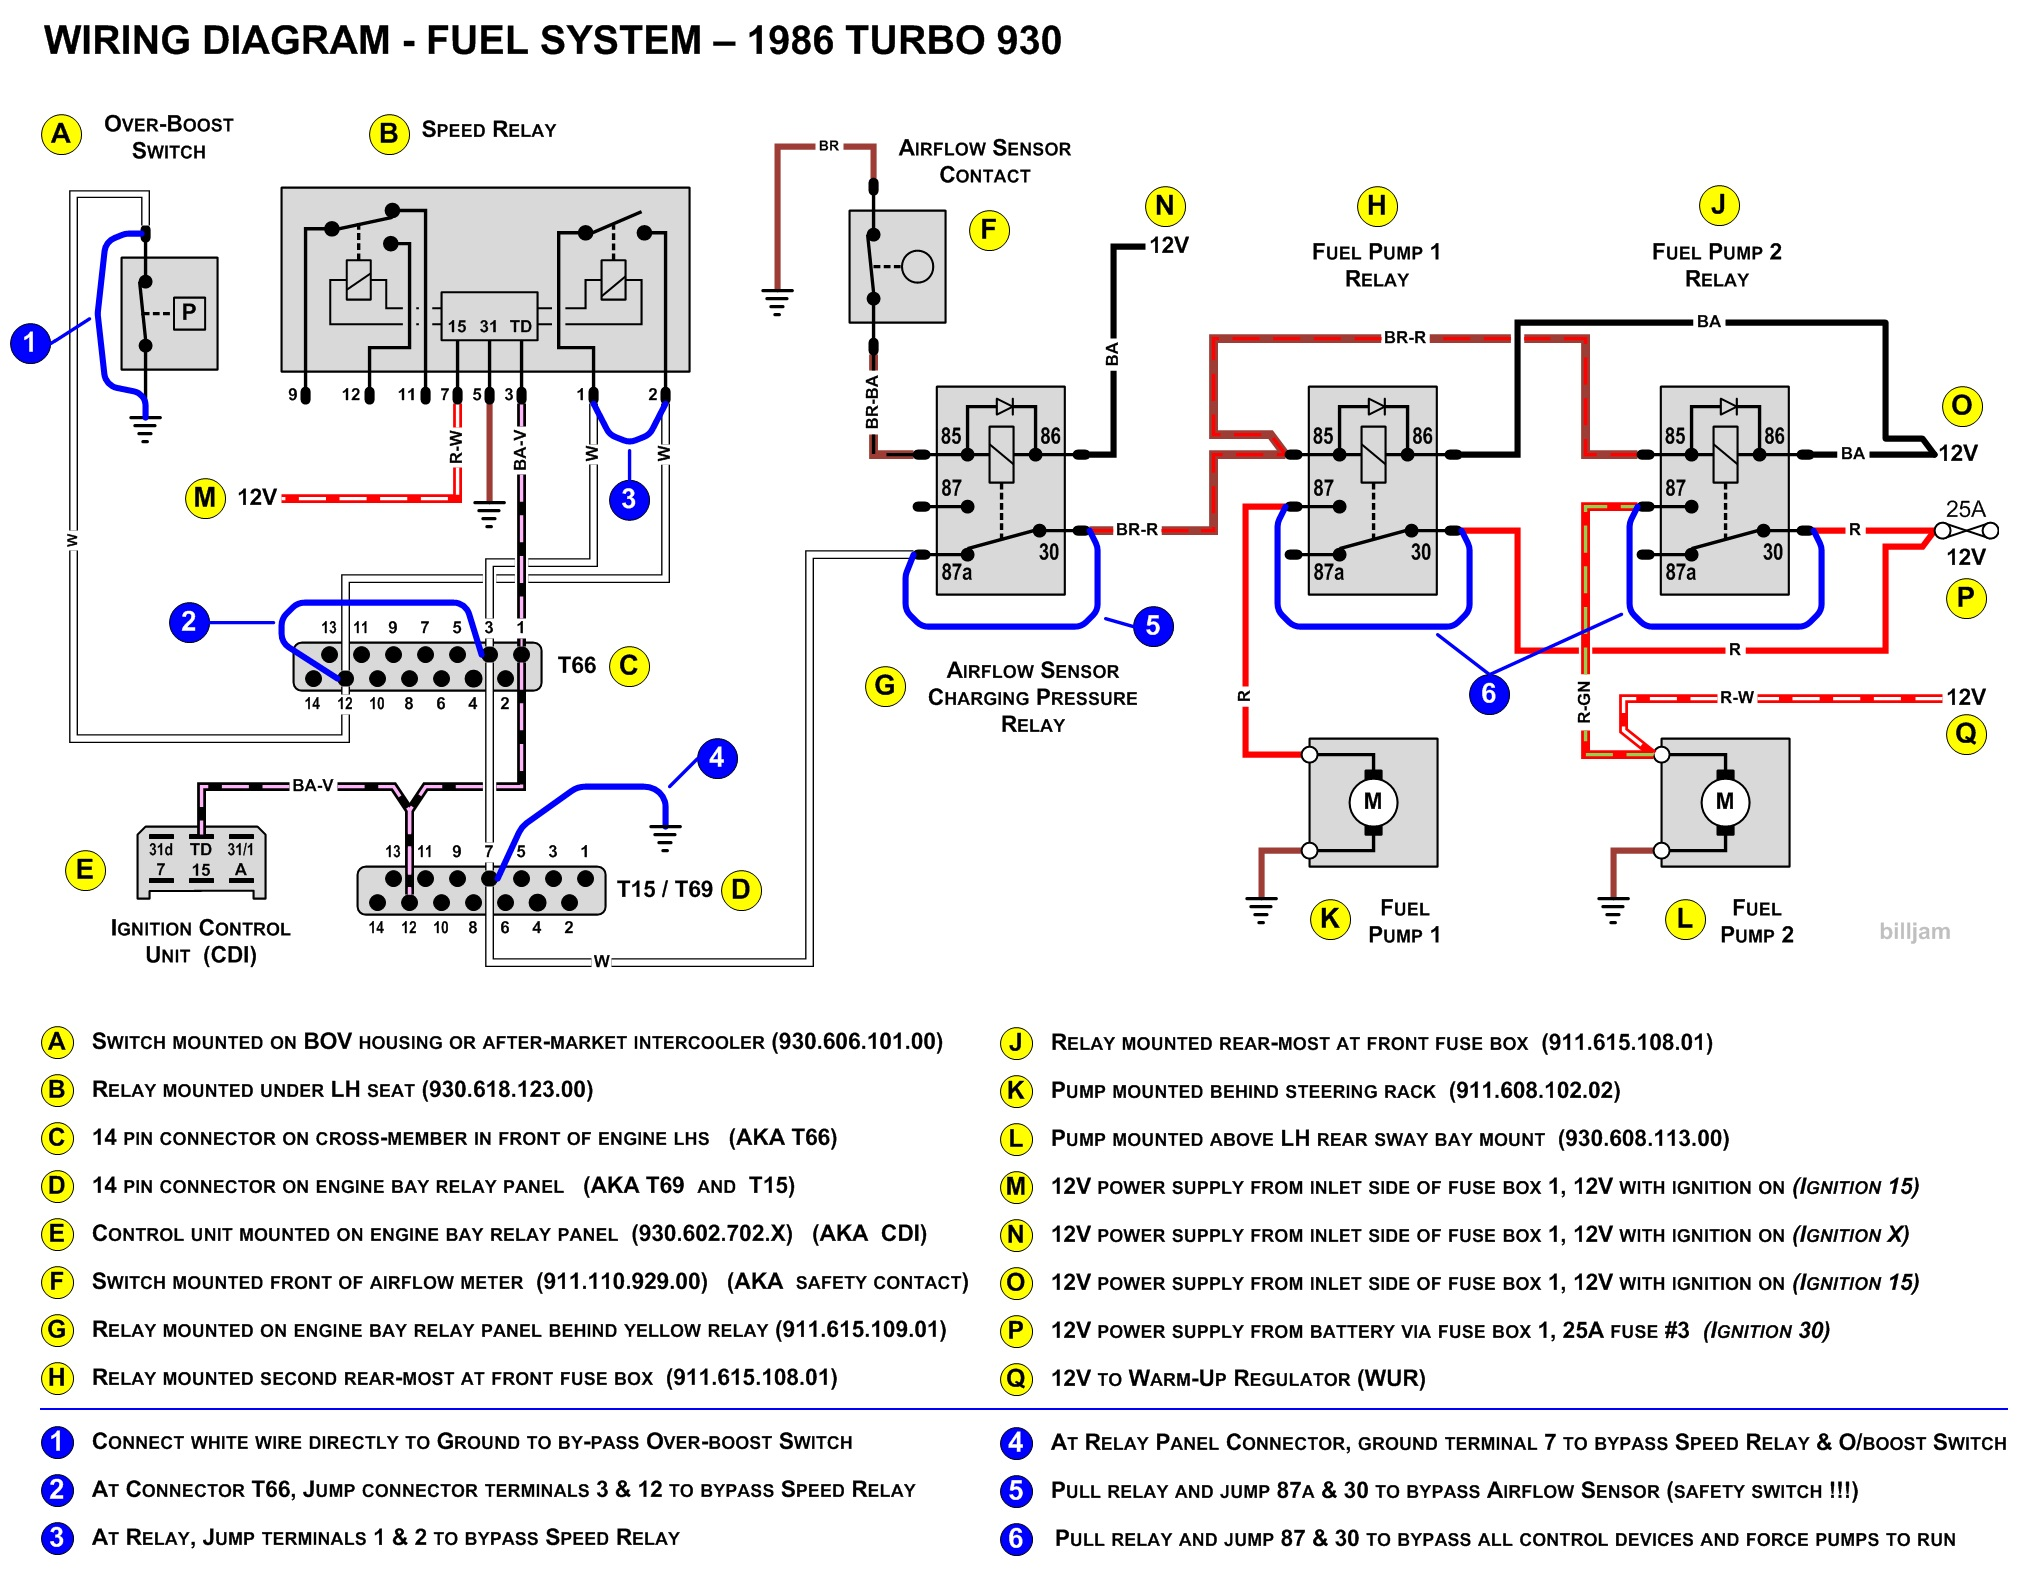 300d Fuse Box Archive Of Automotive Wiring Diagram 1988 Camaro Location Starting Know About U2022 Rh Prezzy Co